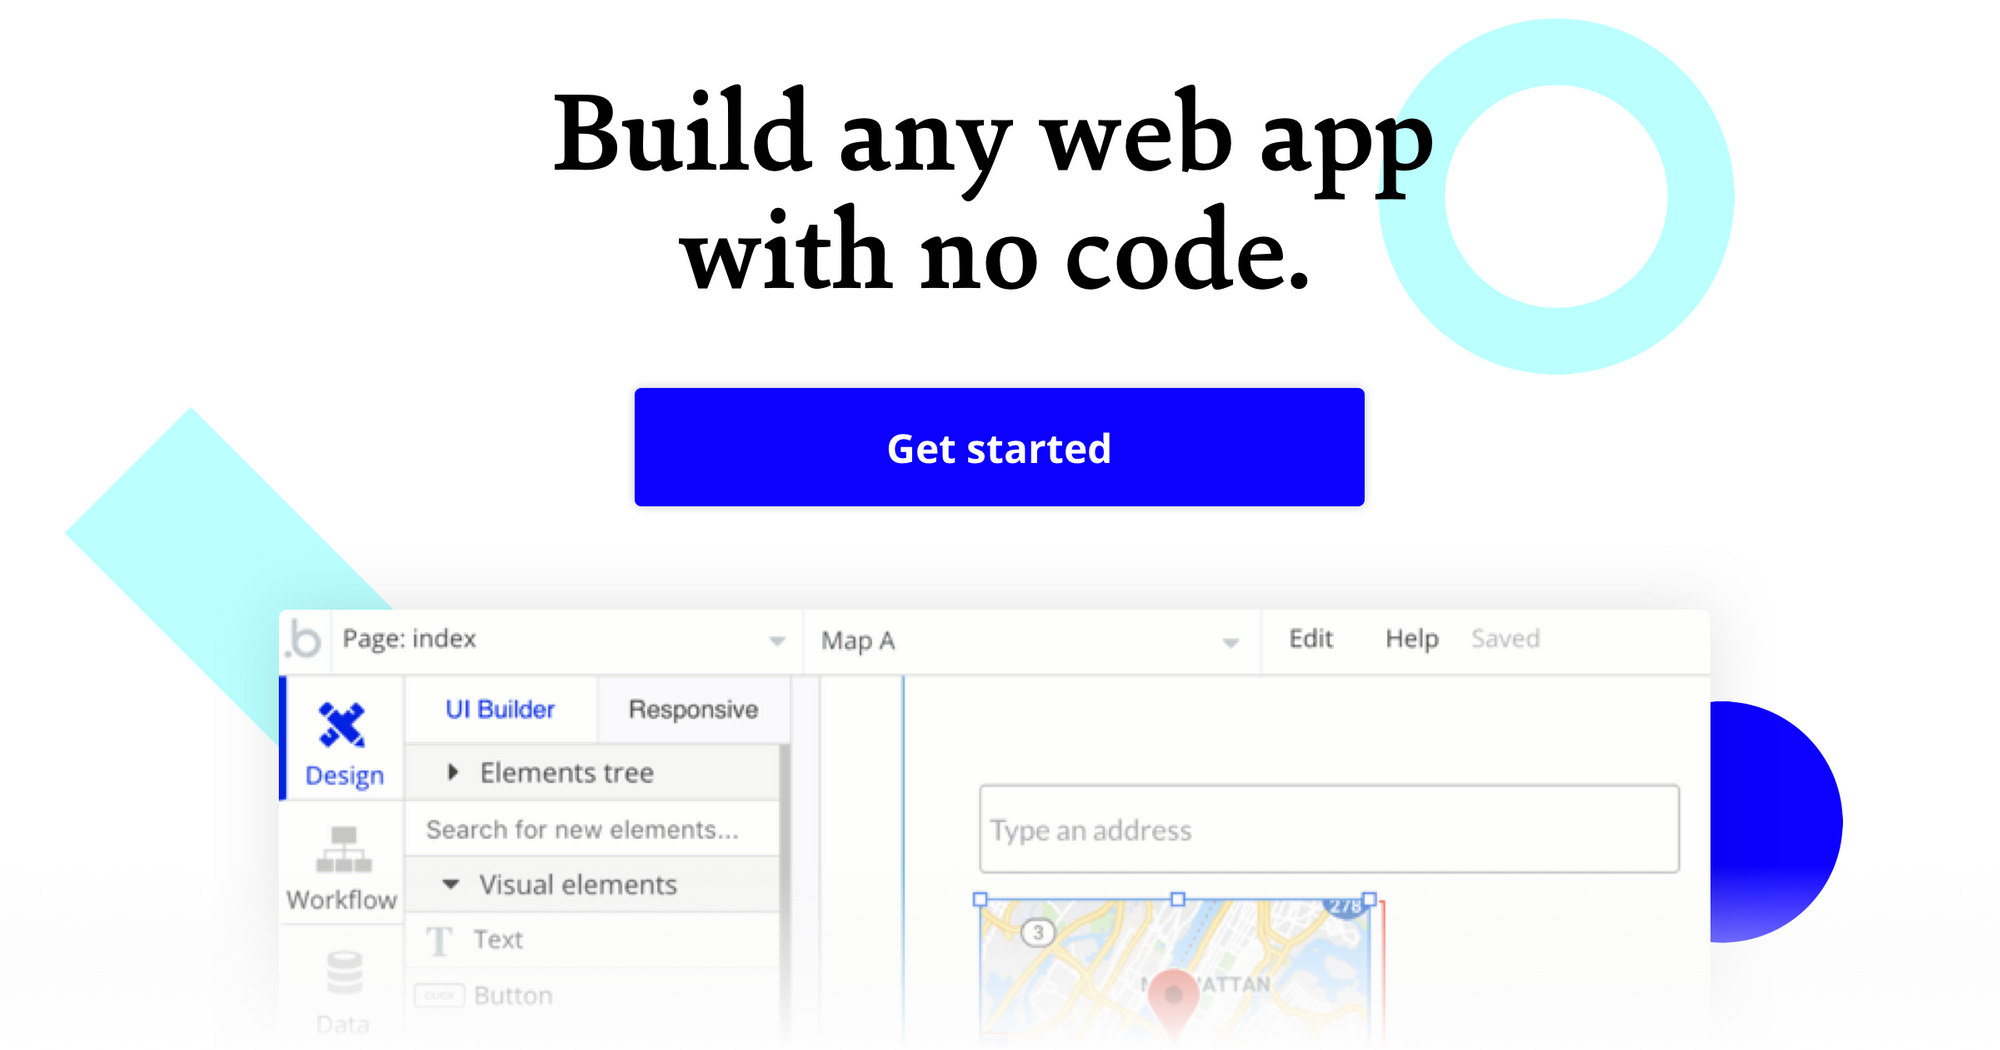 Bubble Blog - The best way to build web apps without code.